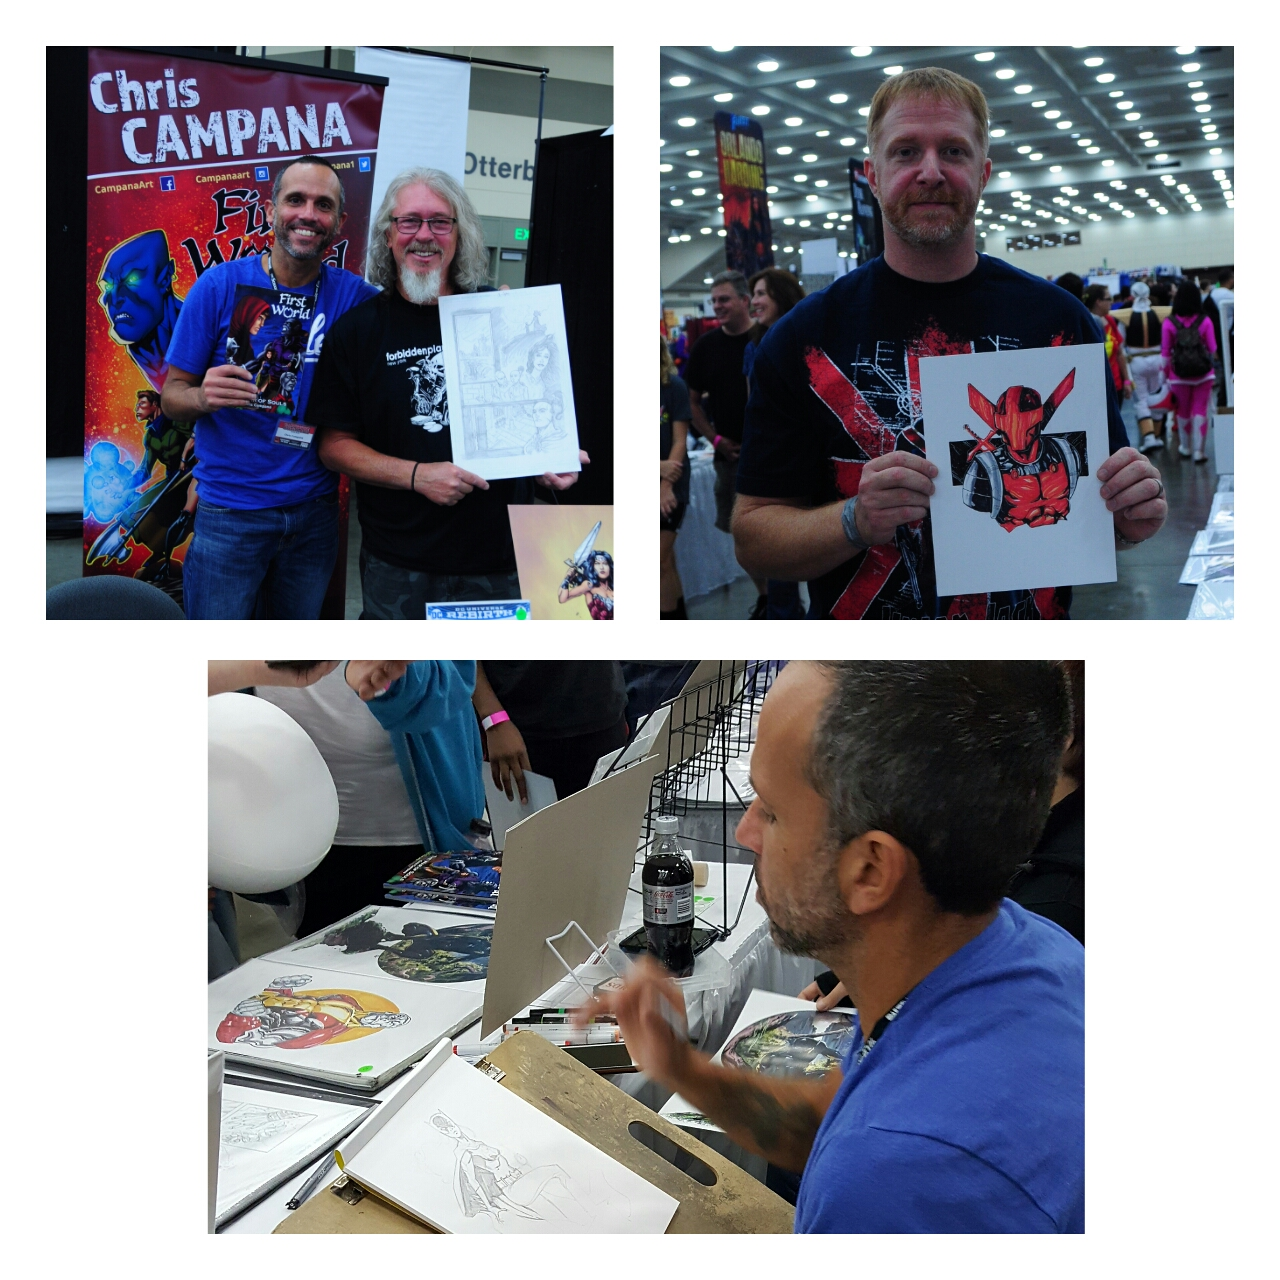 Chris Campana at Baltimore Comic Con 2016